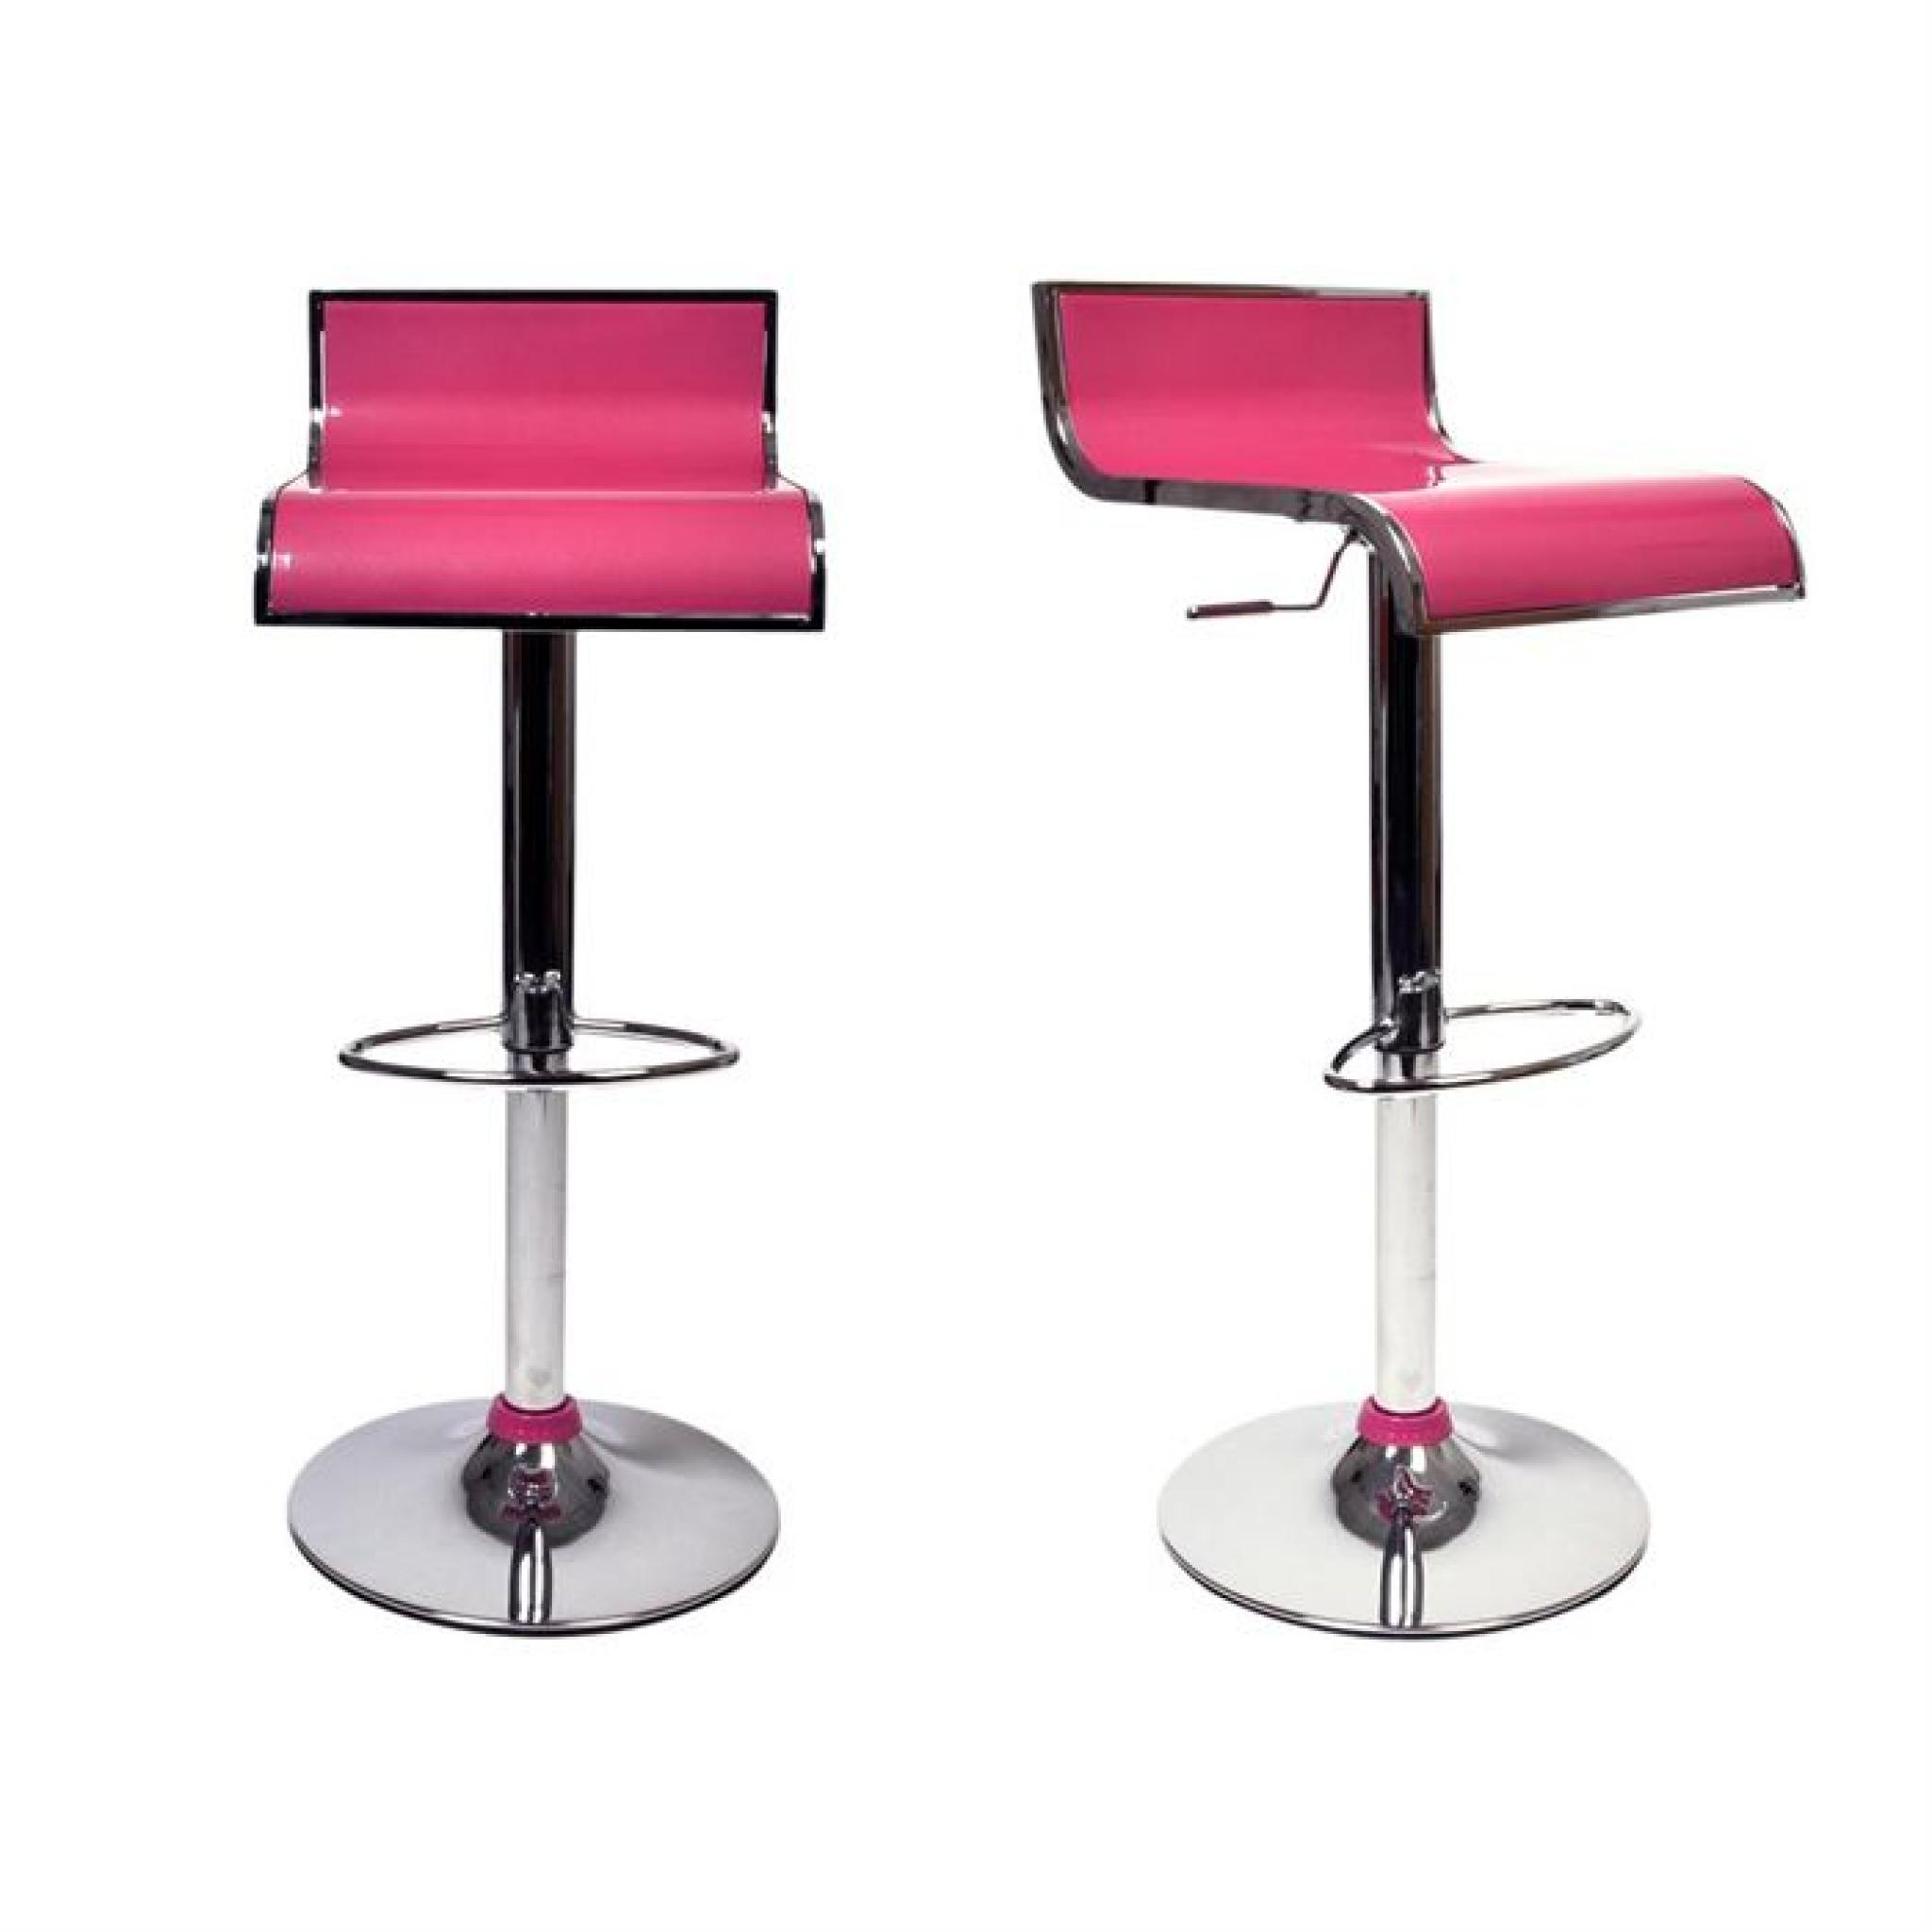 tabourets de bar rose design waves lot de 2 achat vente tabouret de bar pas cher couleur. Black Bedroom Furniture Sets. Home Design Ideas